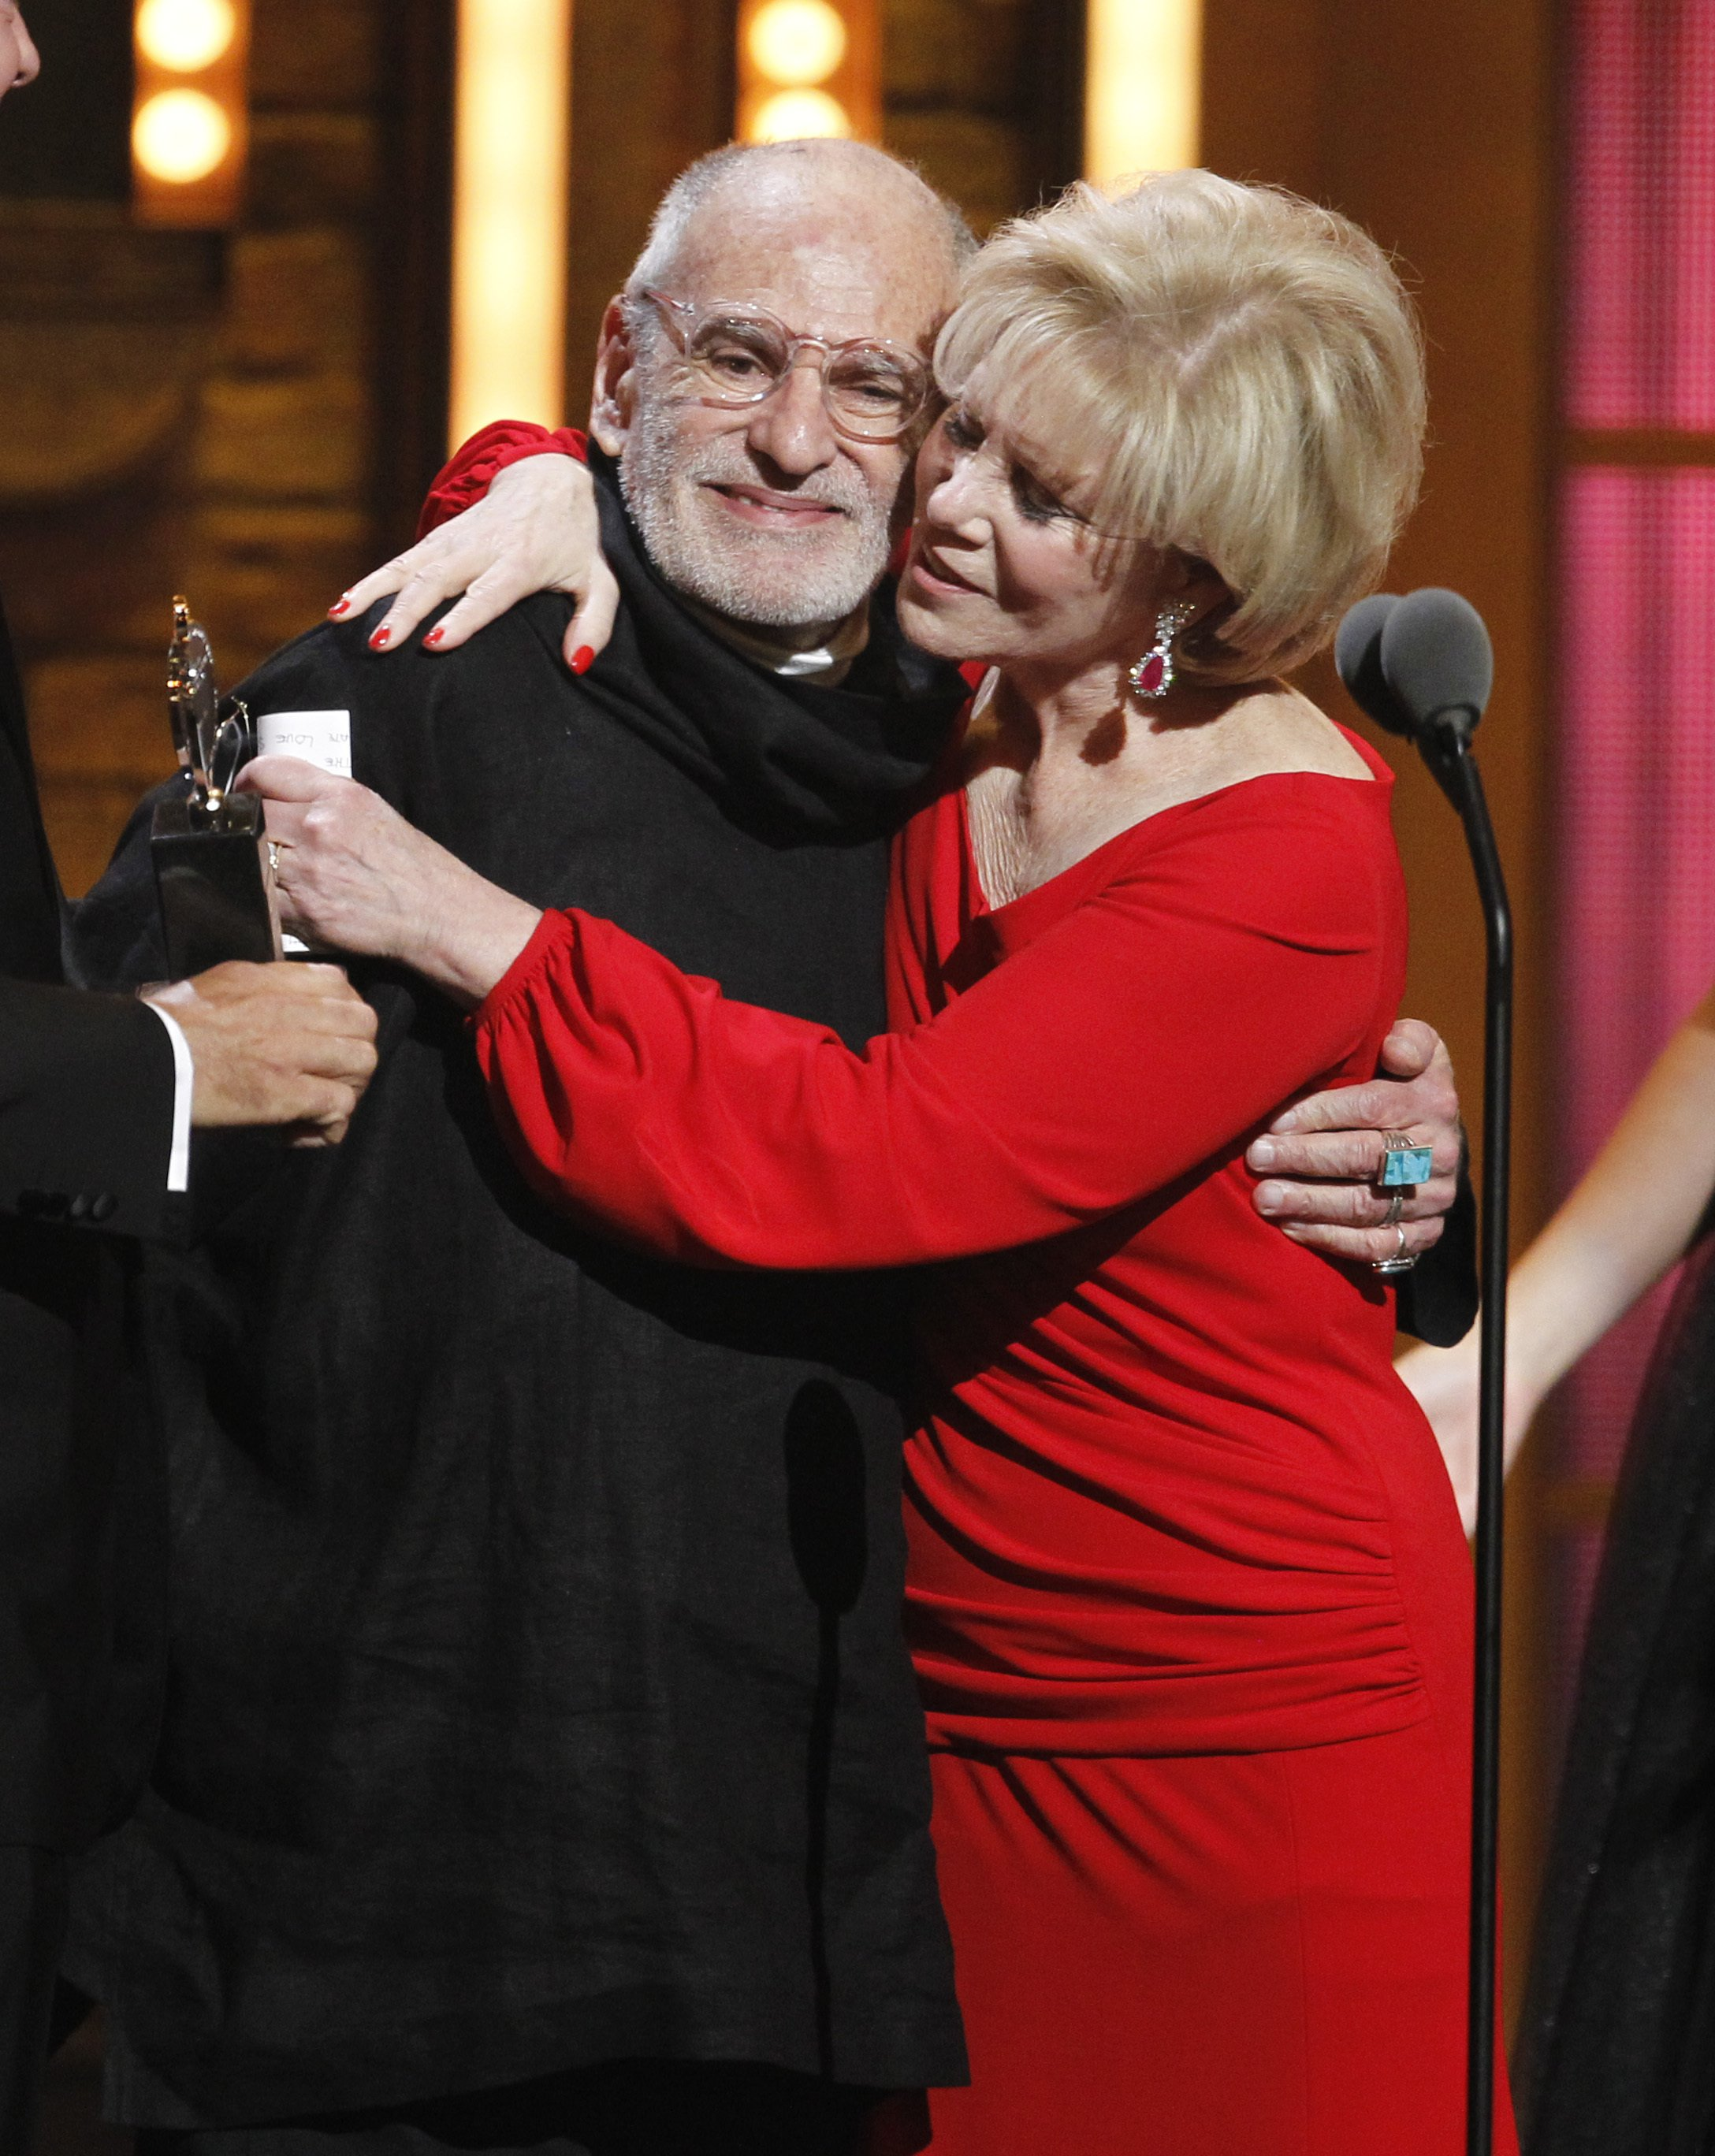 Reaction to the death of AIDS activist, writer Larry Kramer